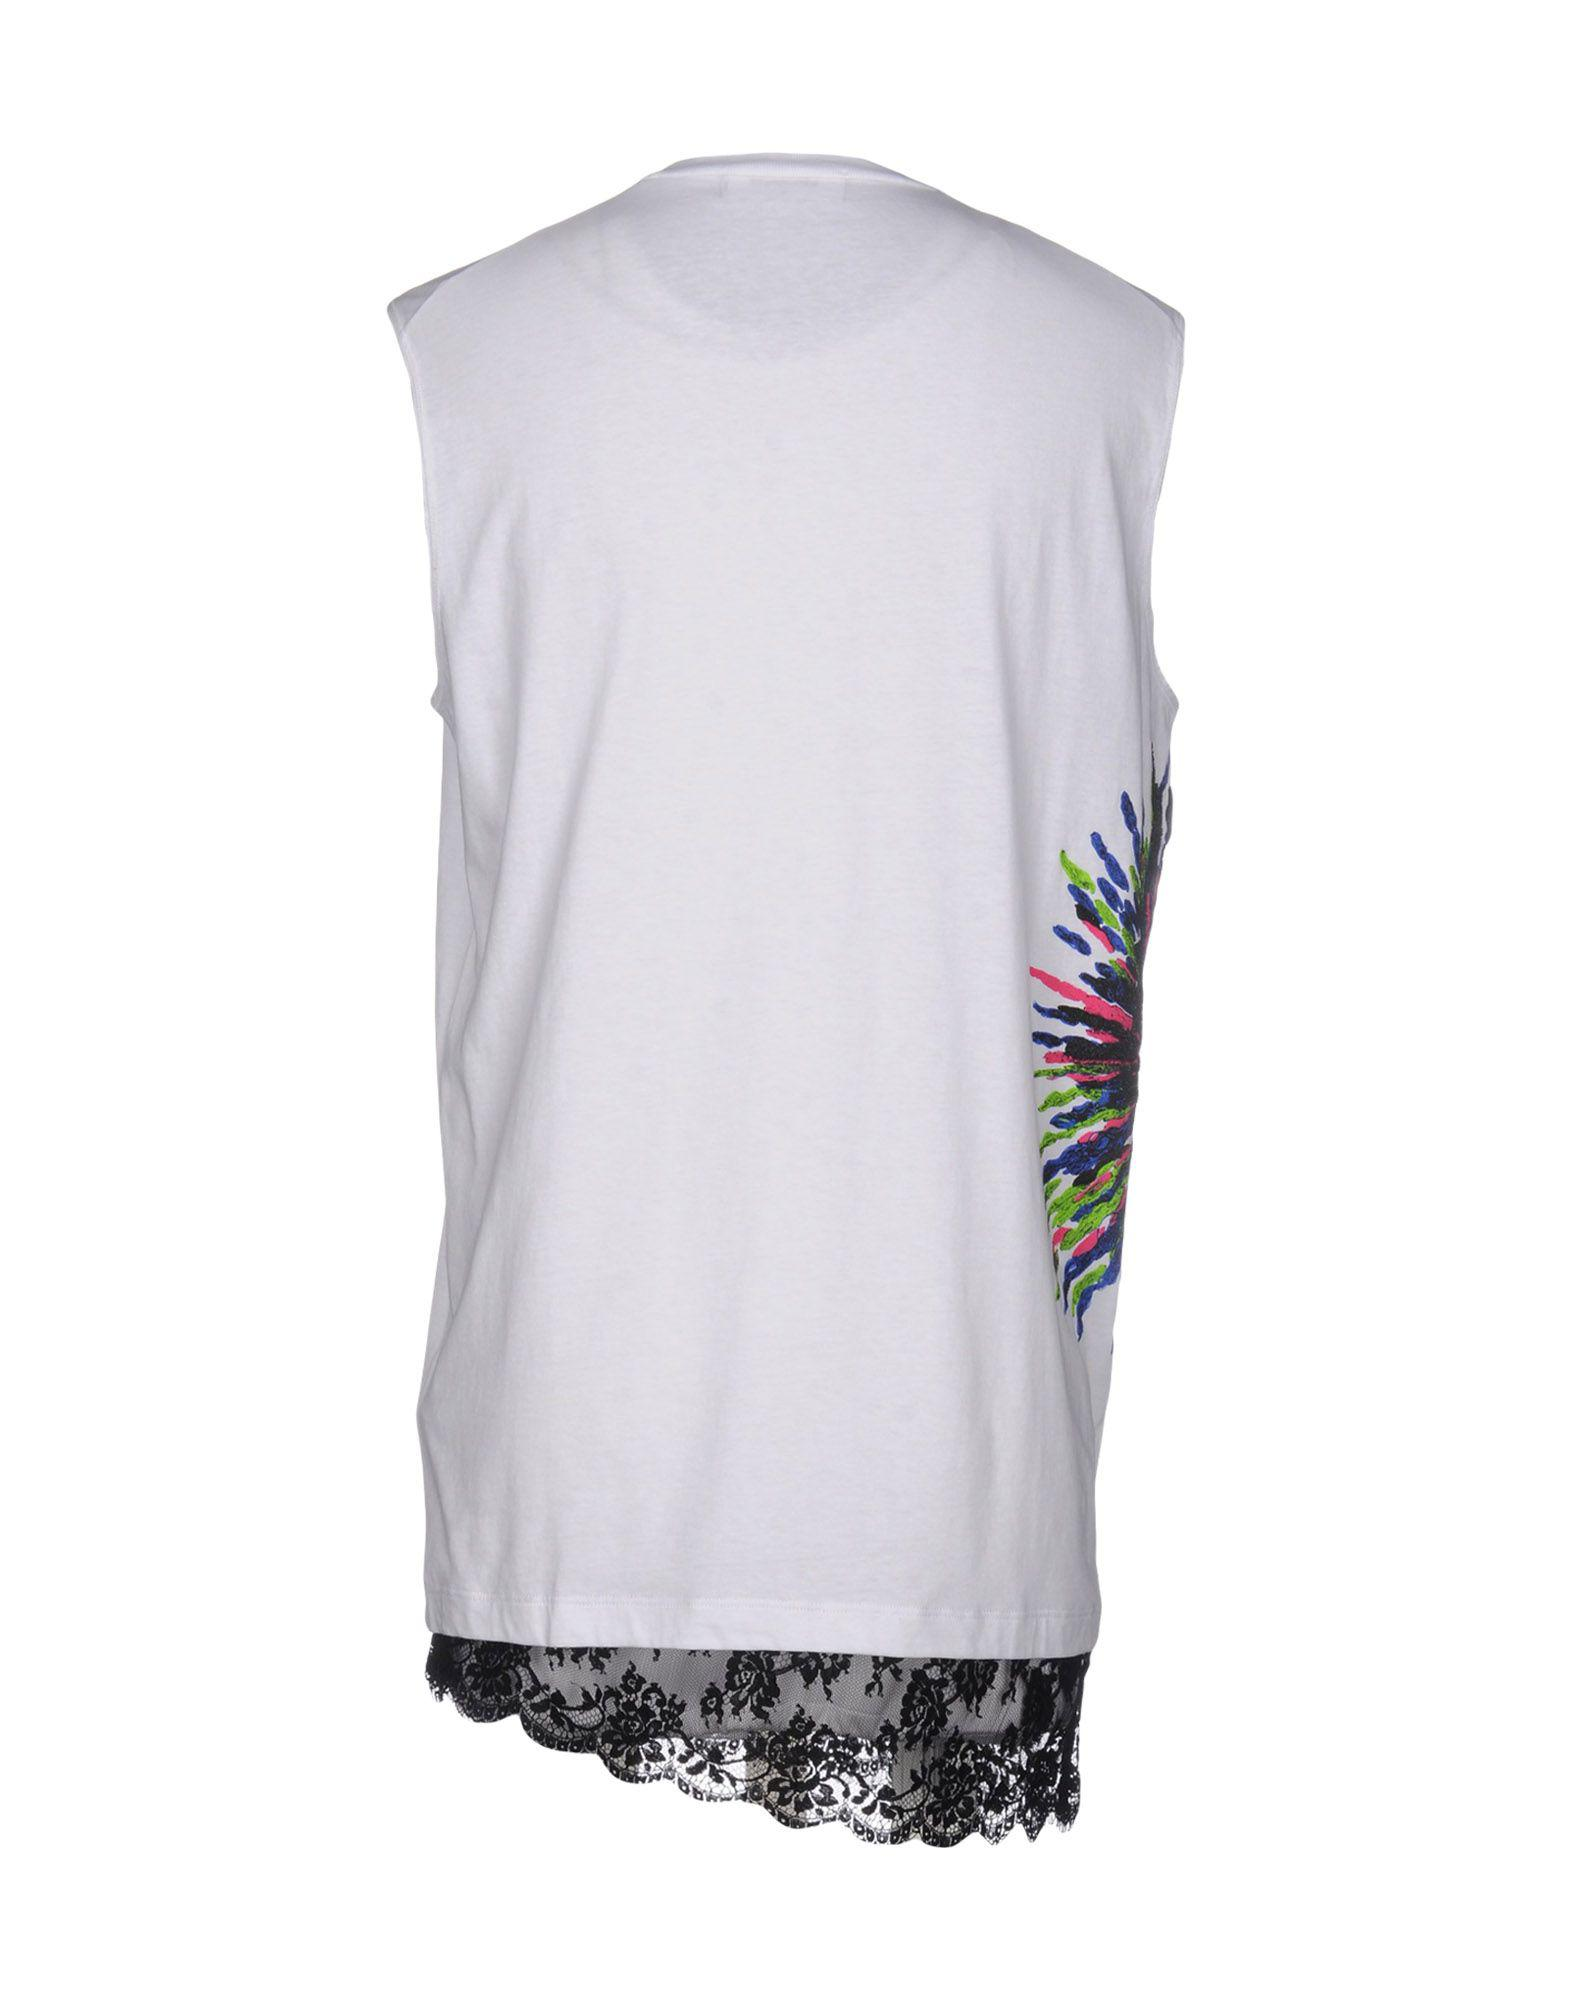 Lyst - DSquared² T-shirt in White for Men c75c81ff8